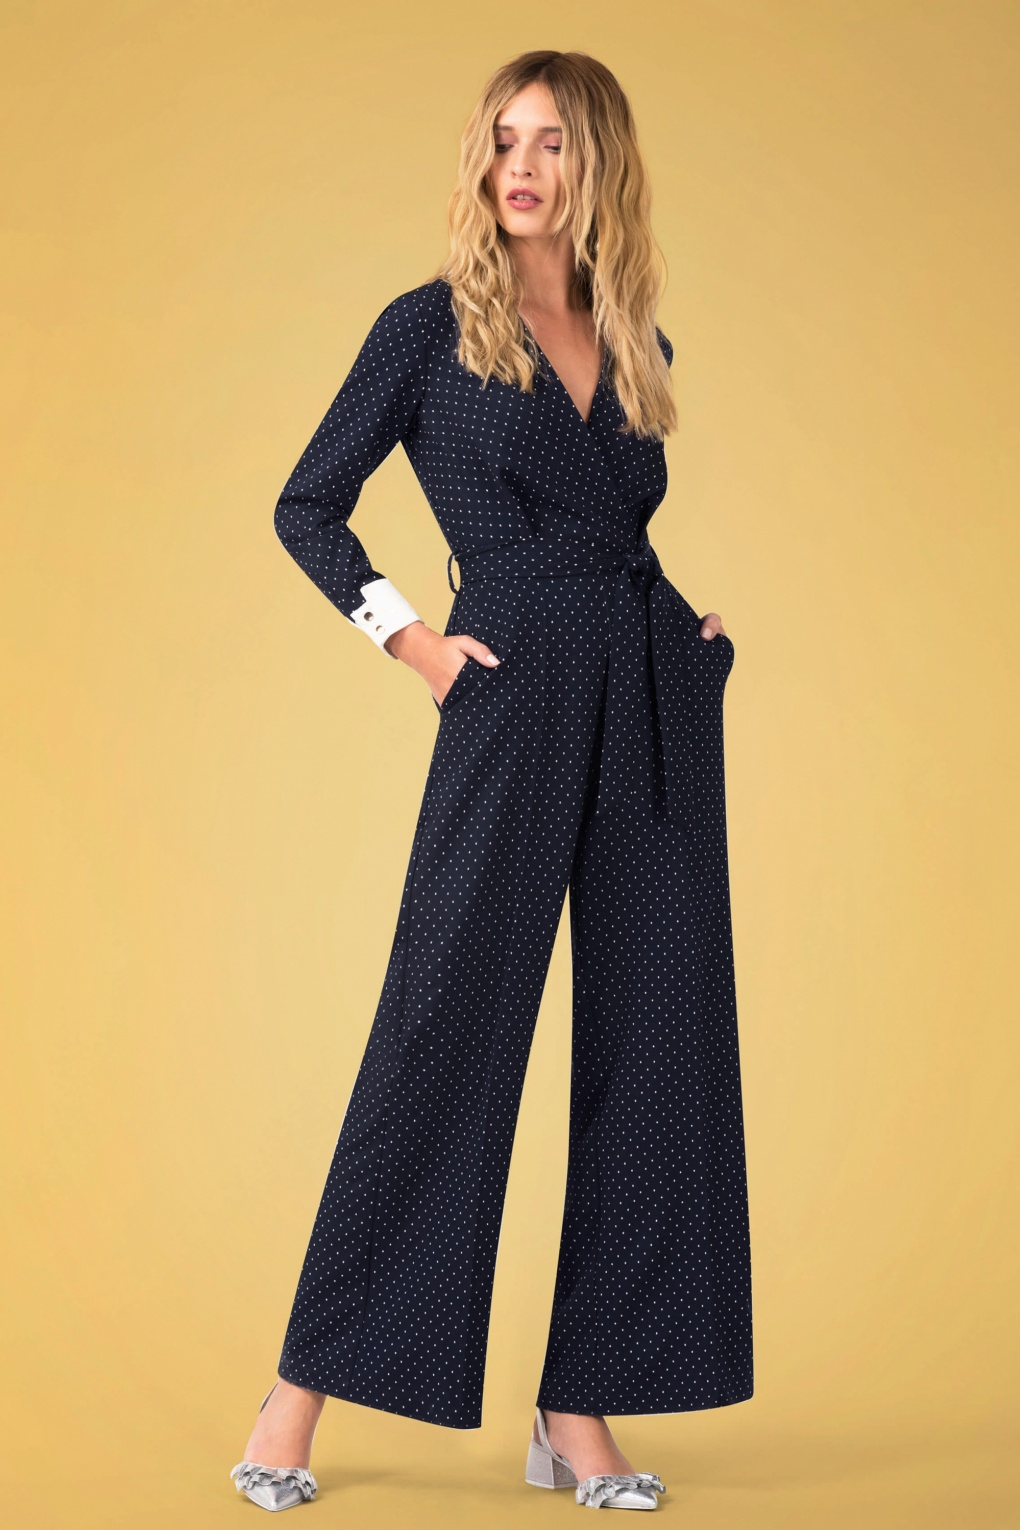 Vintage High Waisted Trousers, Sailor Pants, Jeans 60s Patty Pindot Jumpsuit in Navy £84.49 AT vintagedancer.com